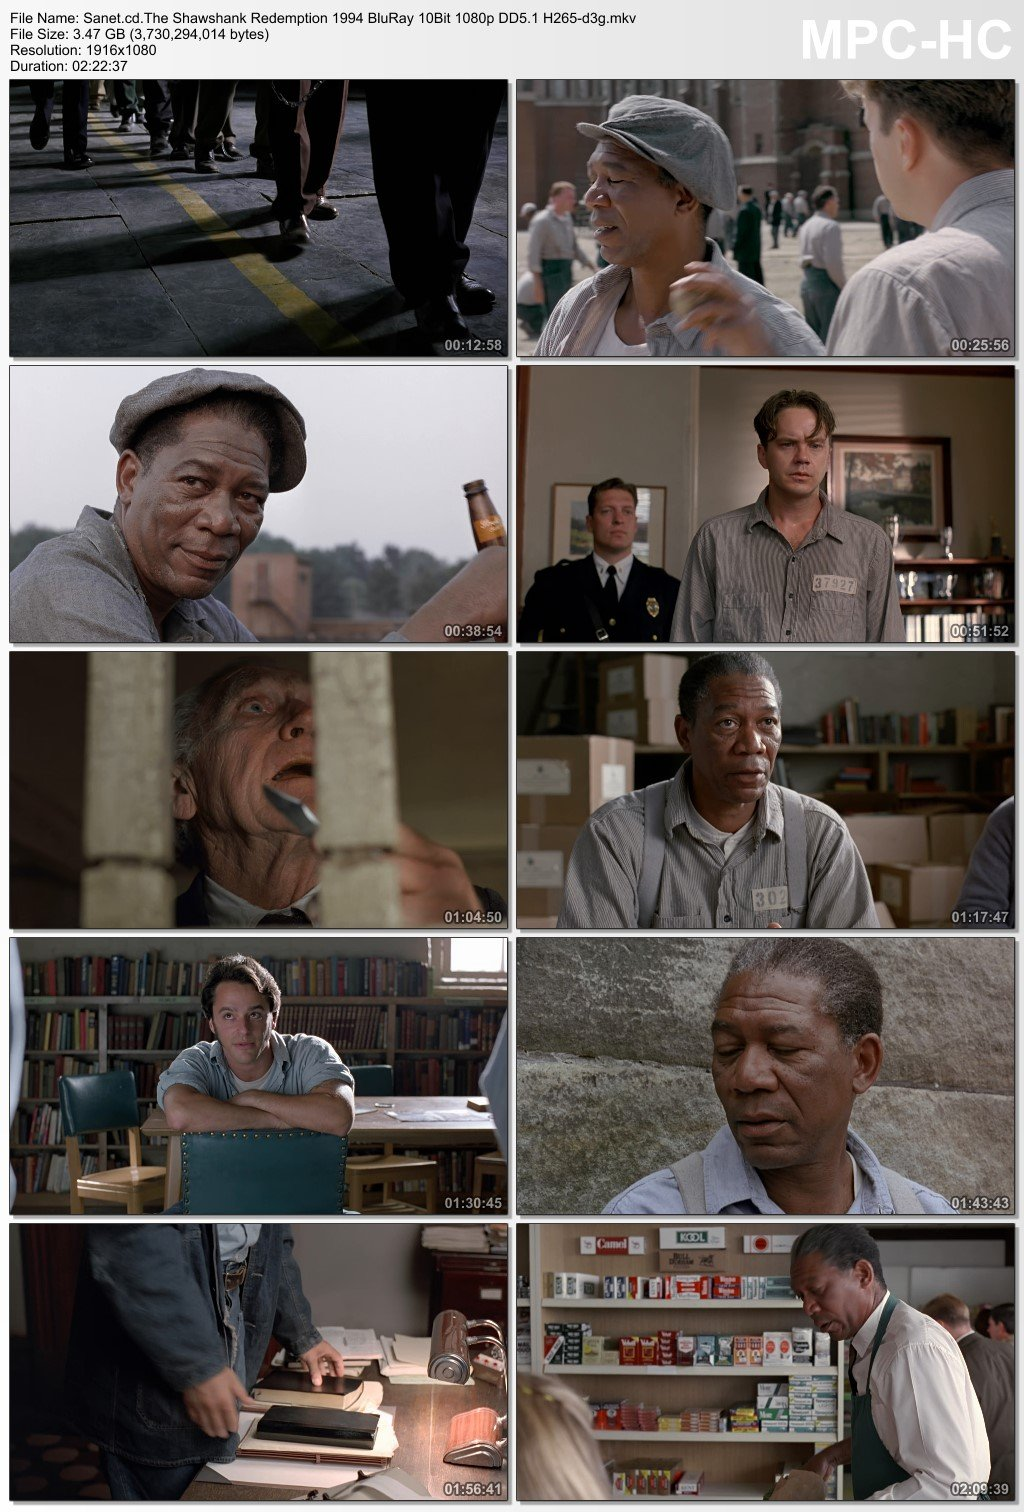 shawshank redemption all about relationships The shawshank redemption is a film that will make your day the godfather might make you feel disappointed in humanity the shawshank redemption is about patiently waiting for the perfect opportunity for years the godfather is often about acting on the impulse the shawshank redemption is a.